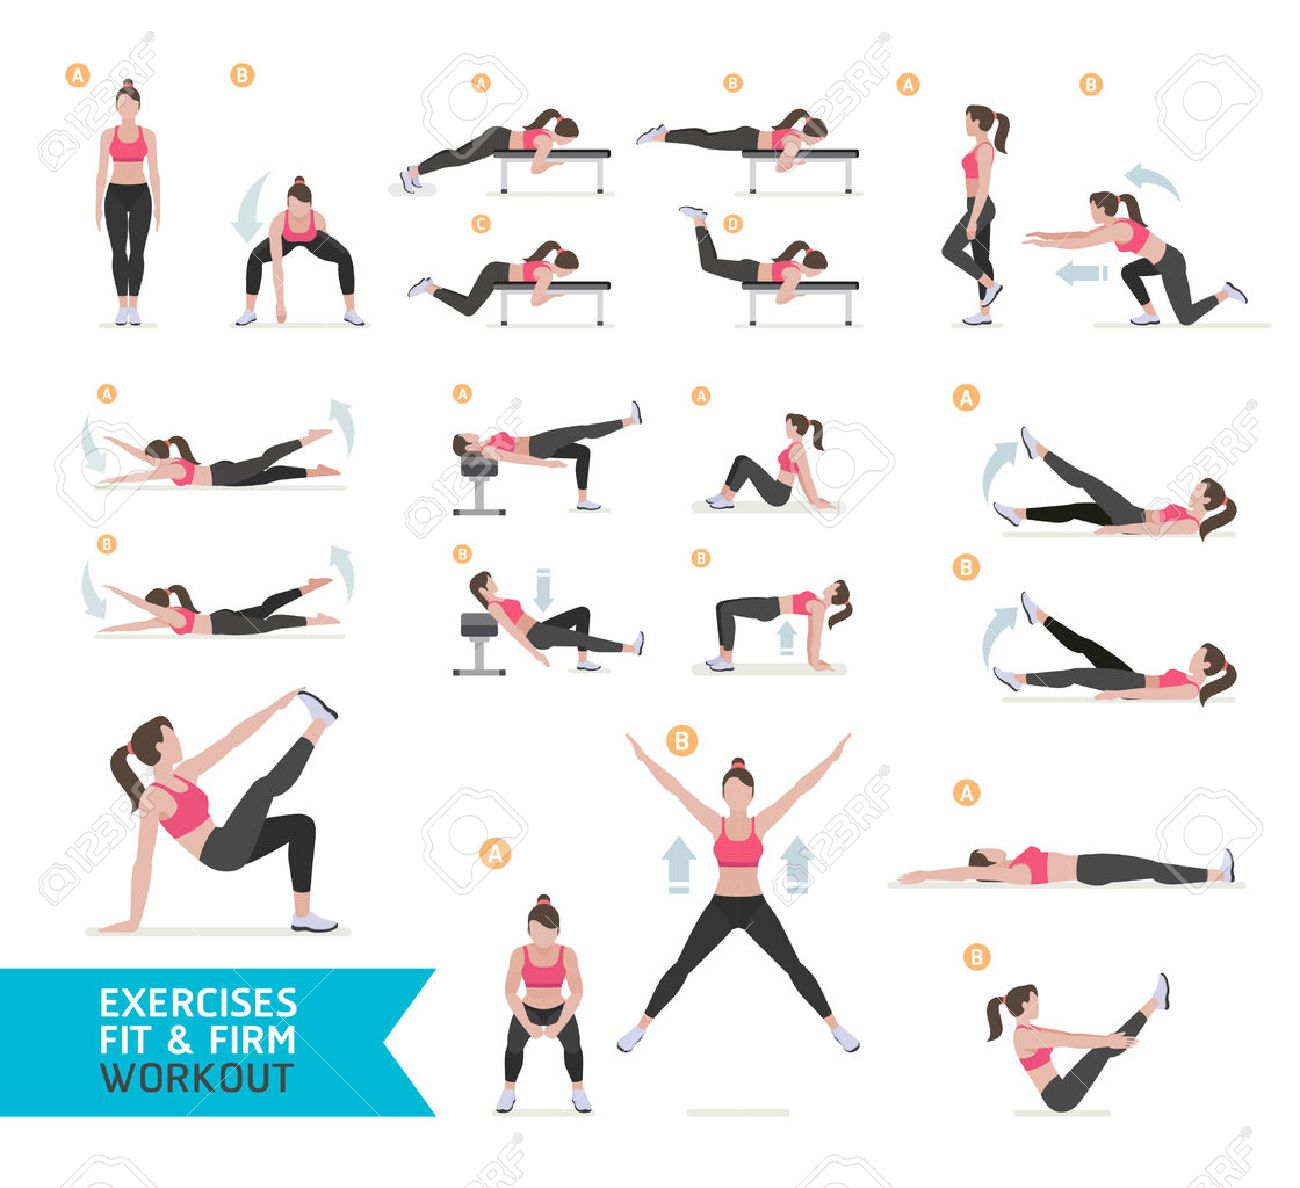 entrainement fitness femme